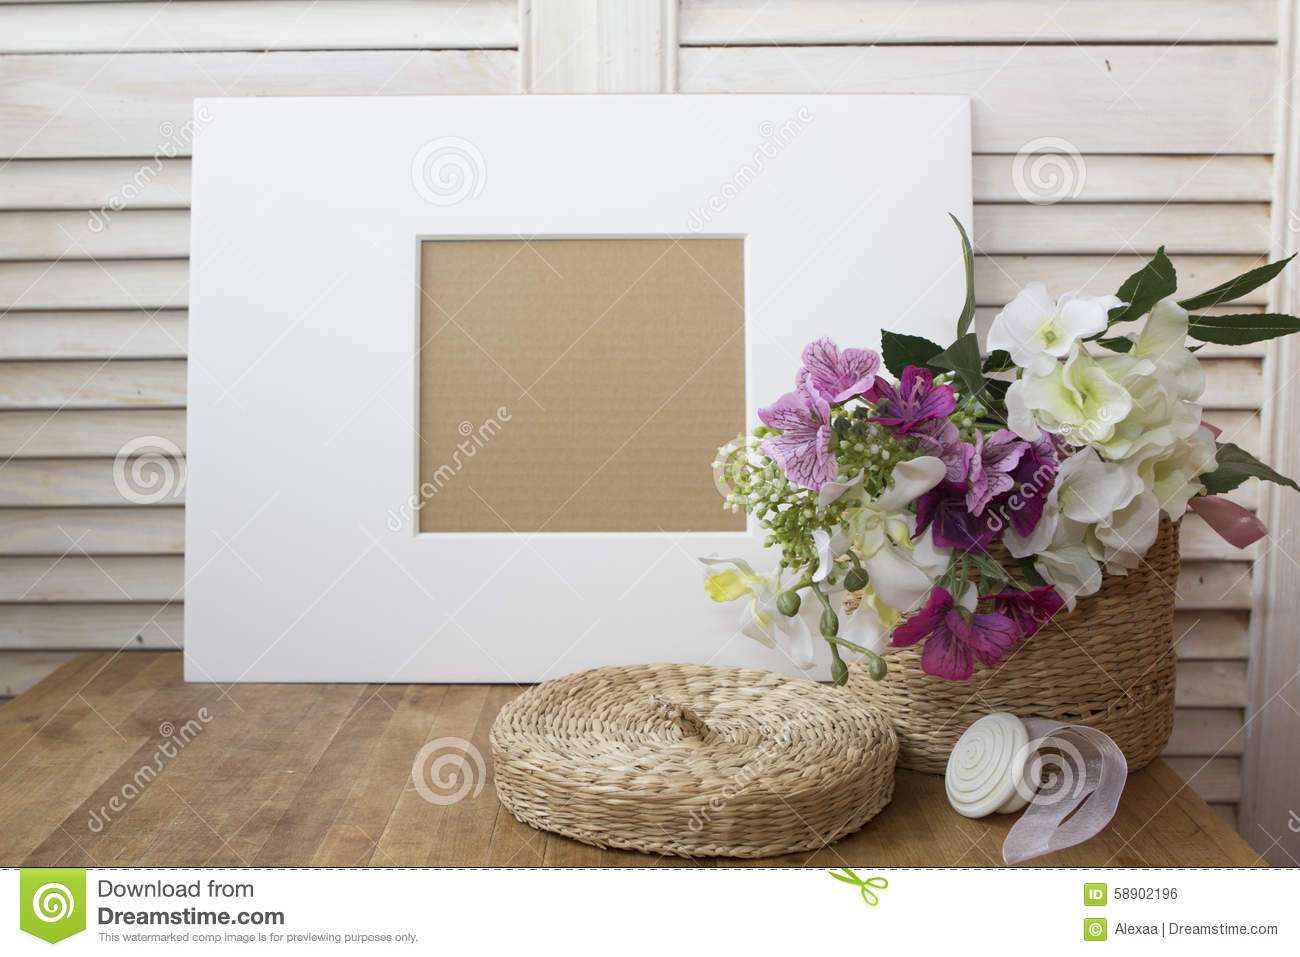 Still Life With A White Frame And A Nice Flowers Stock Photo - Image ...